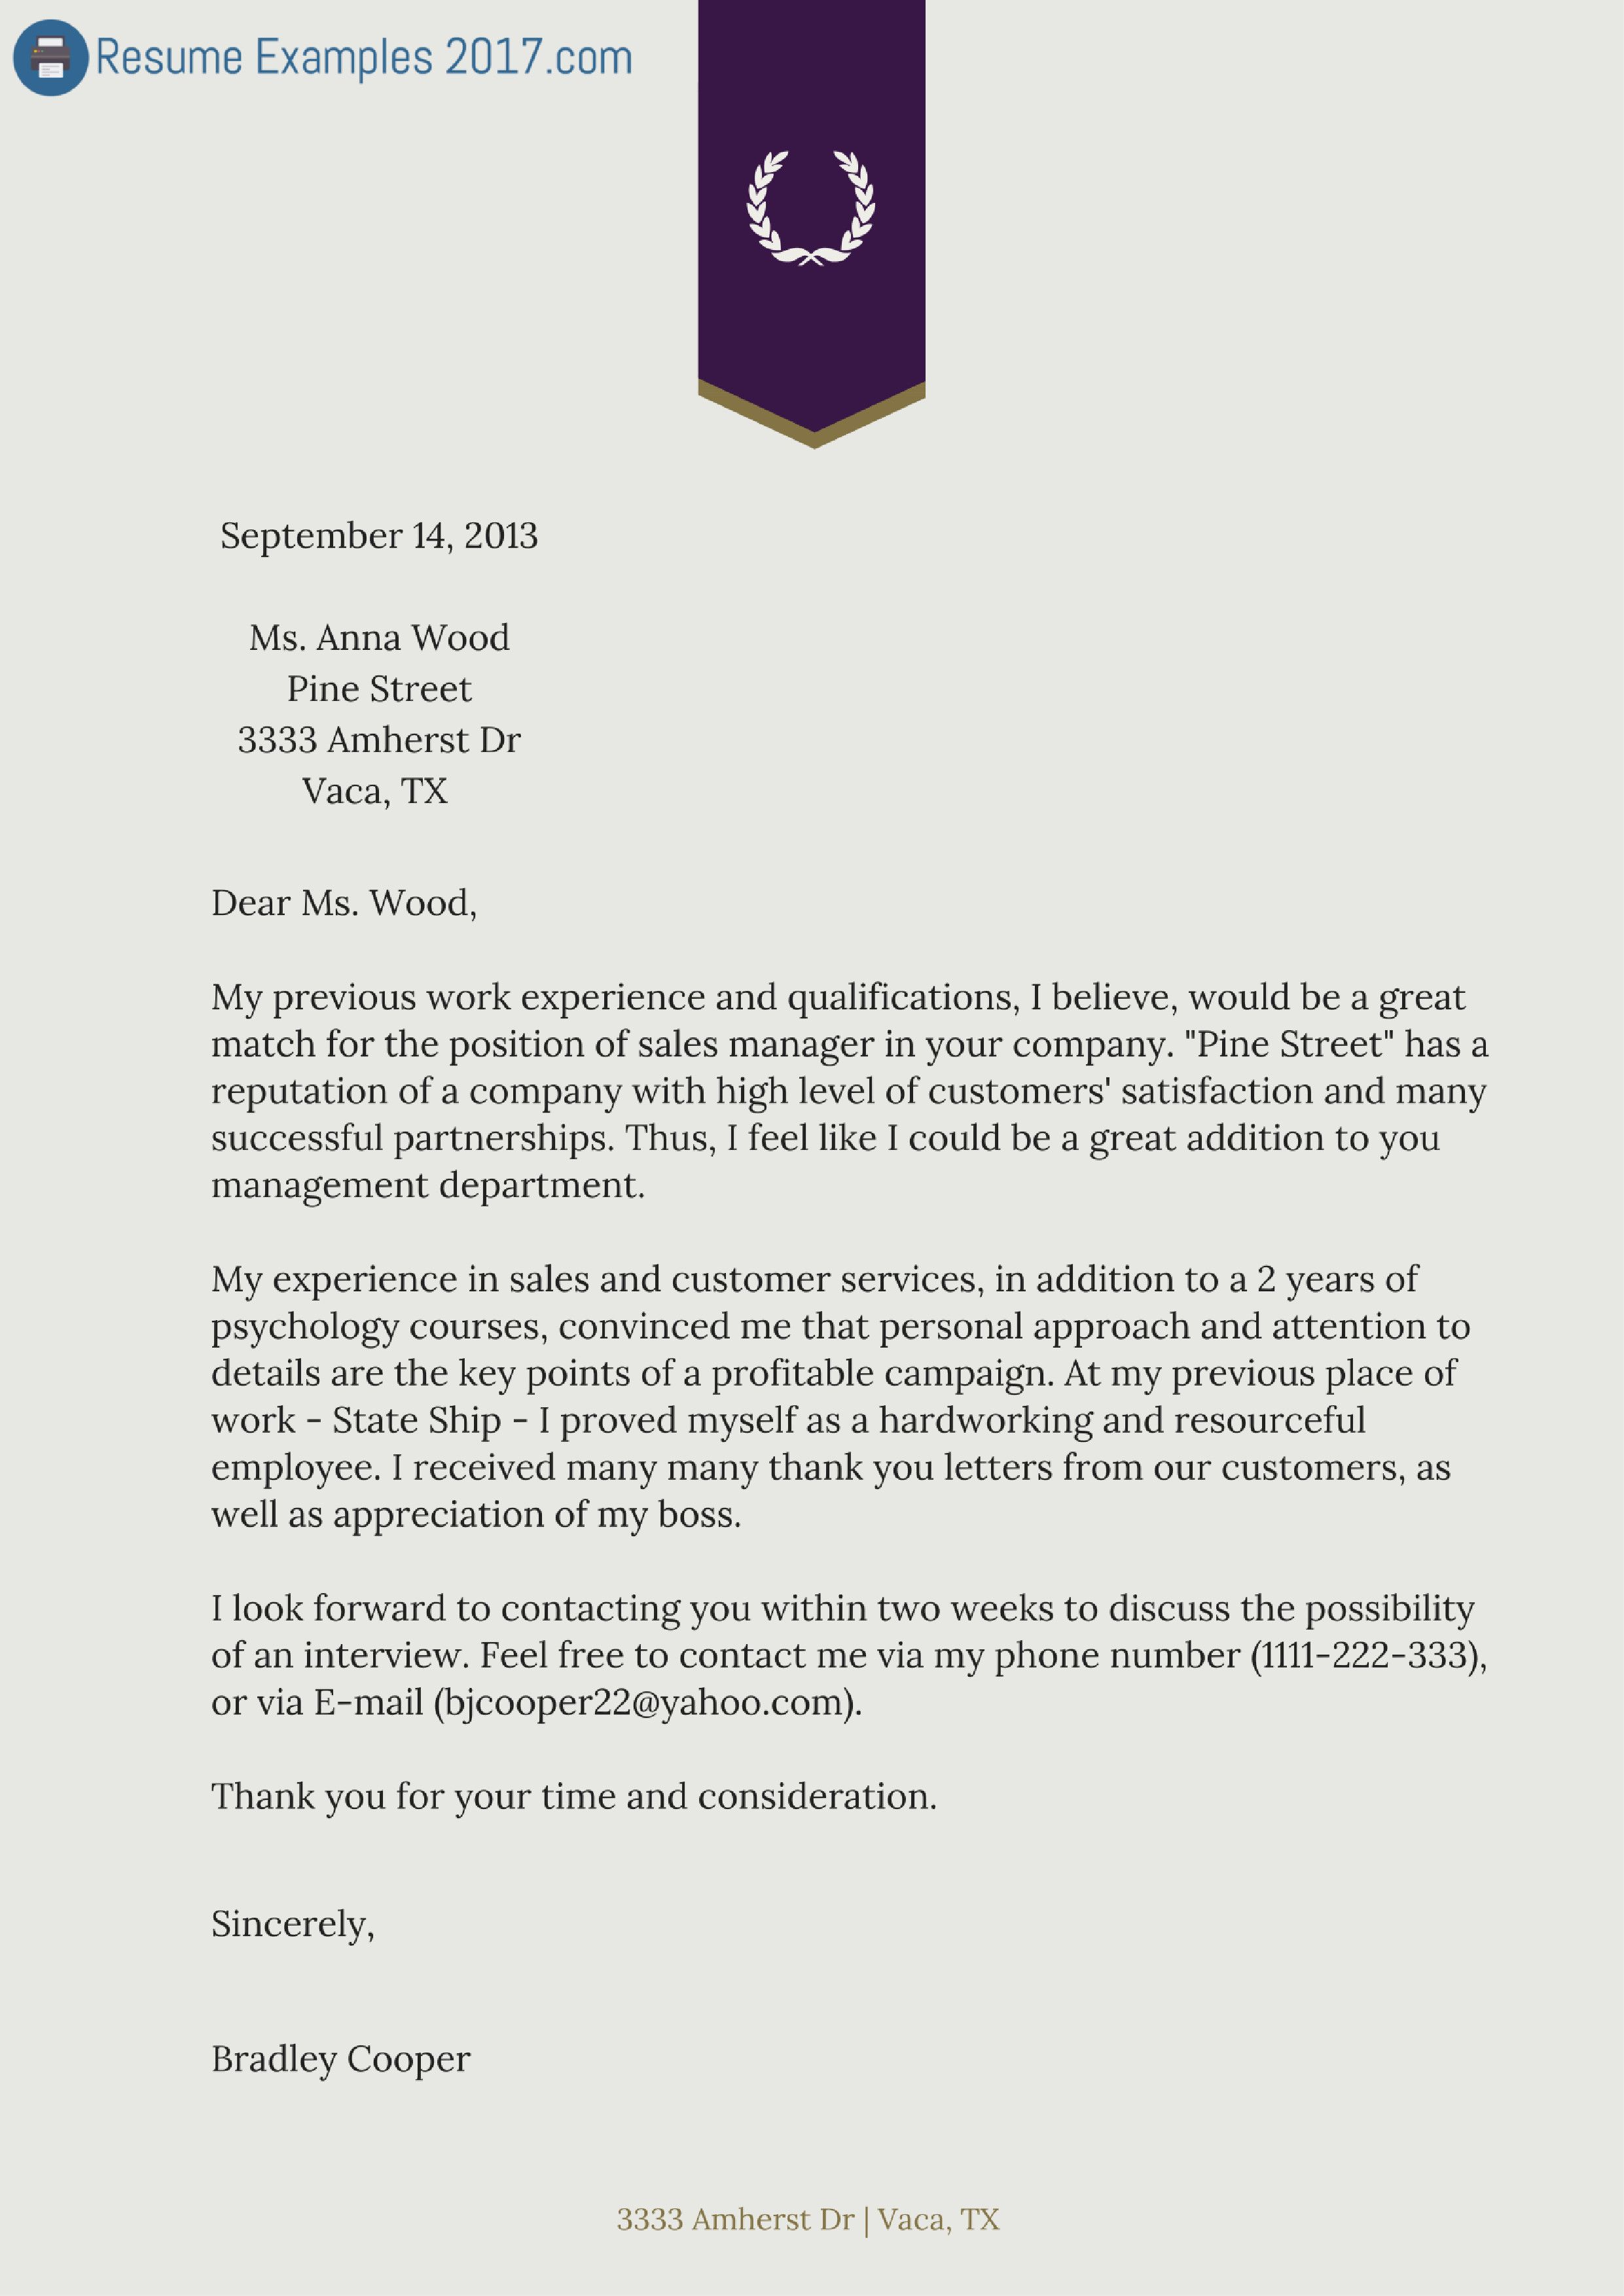 Sales Resume Examples 2017 Job Resume and Cover Letter